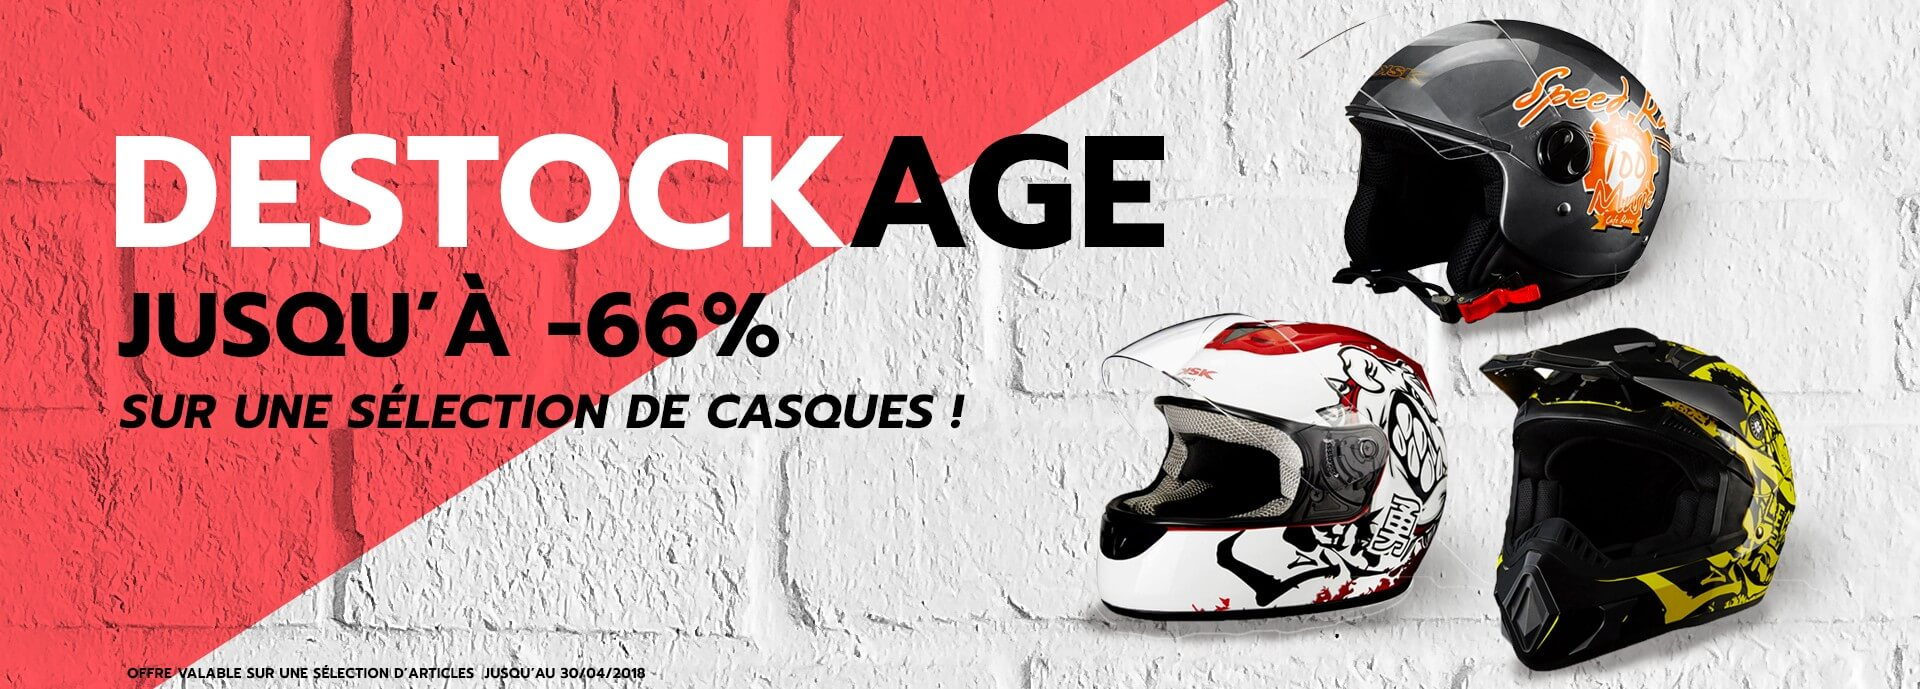 Destockage casques Avril 2018